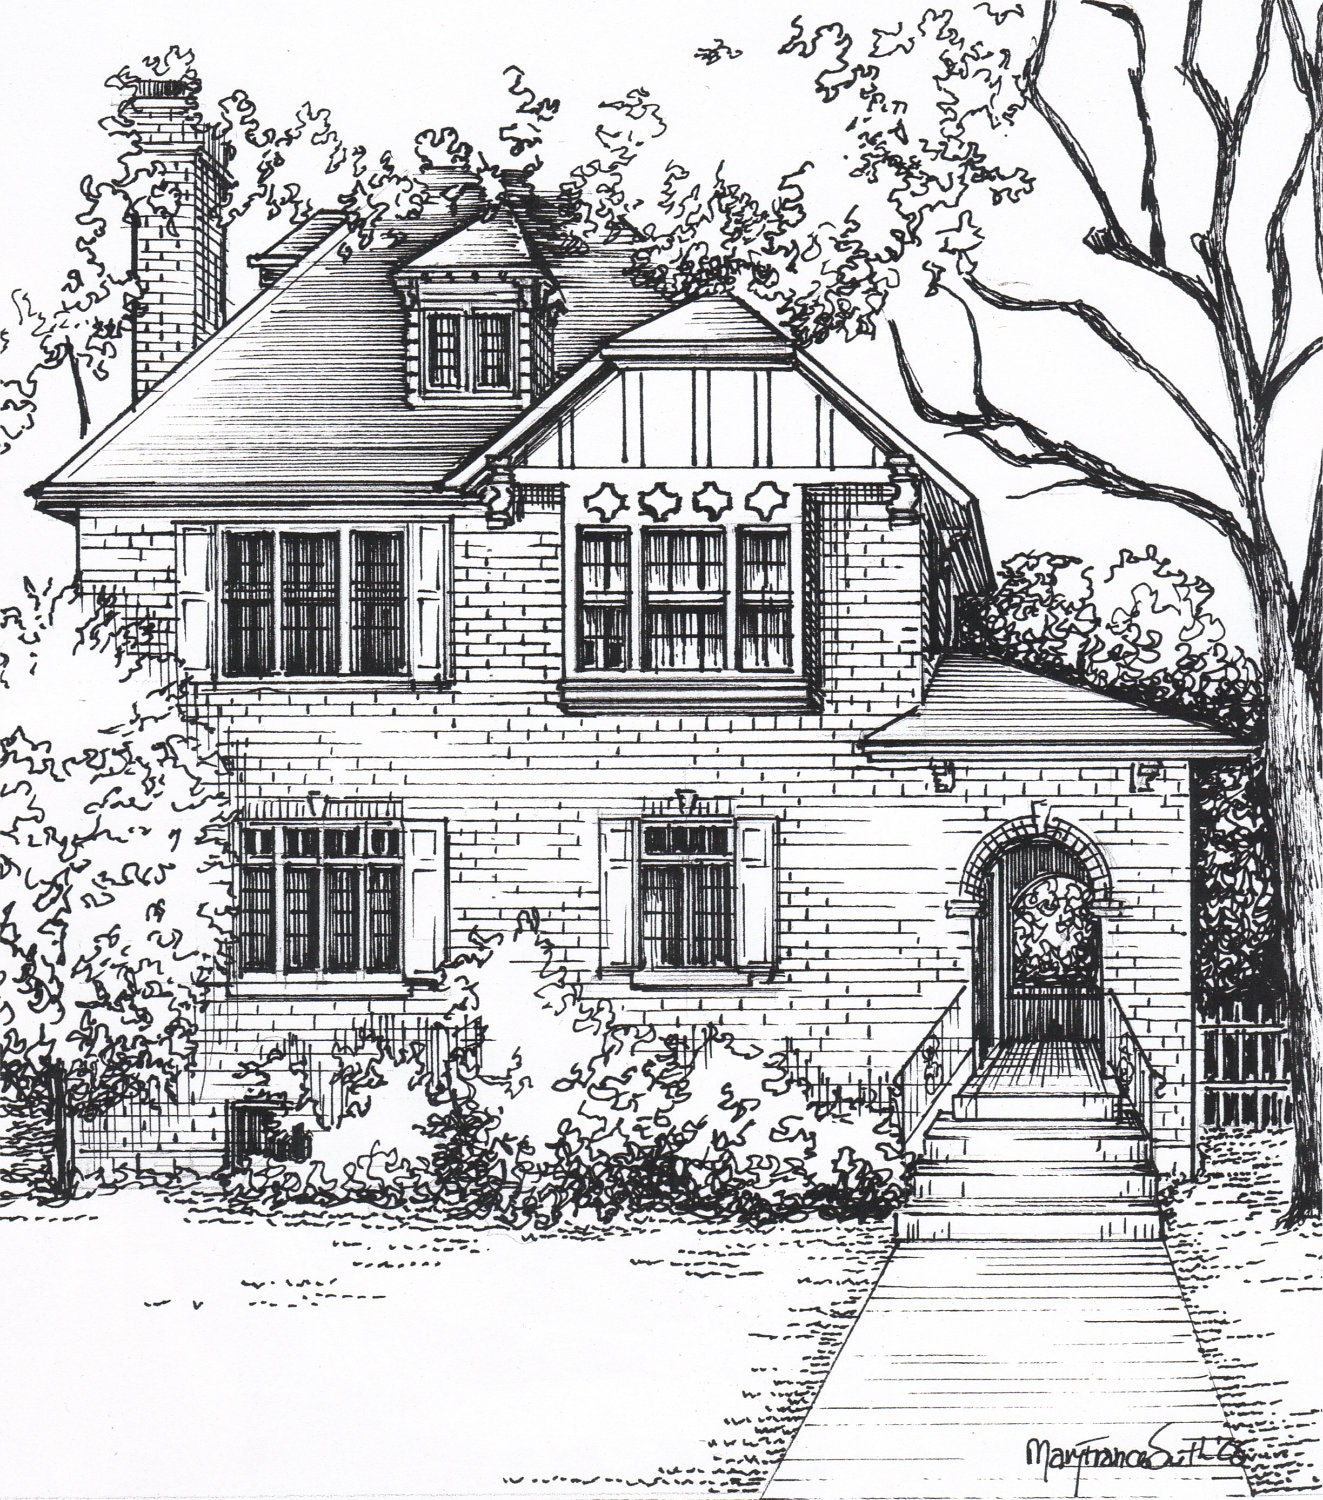 Custom house sketch hand drawn home portrait in ink for Architectural drawings of houses